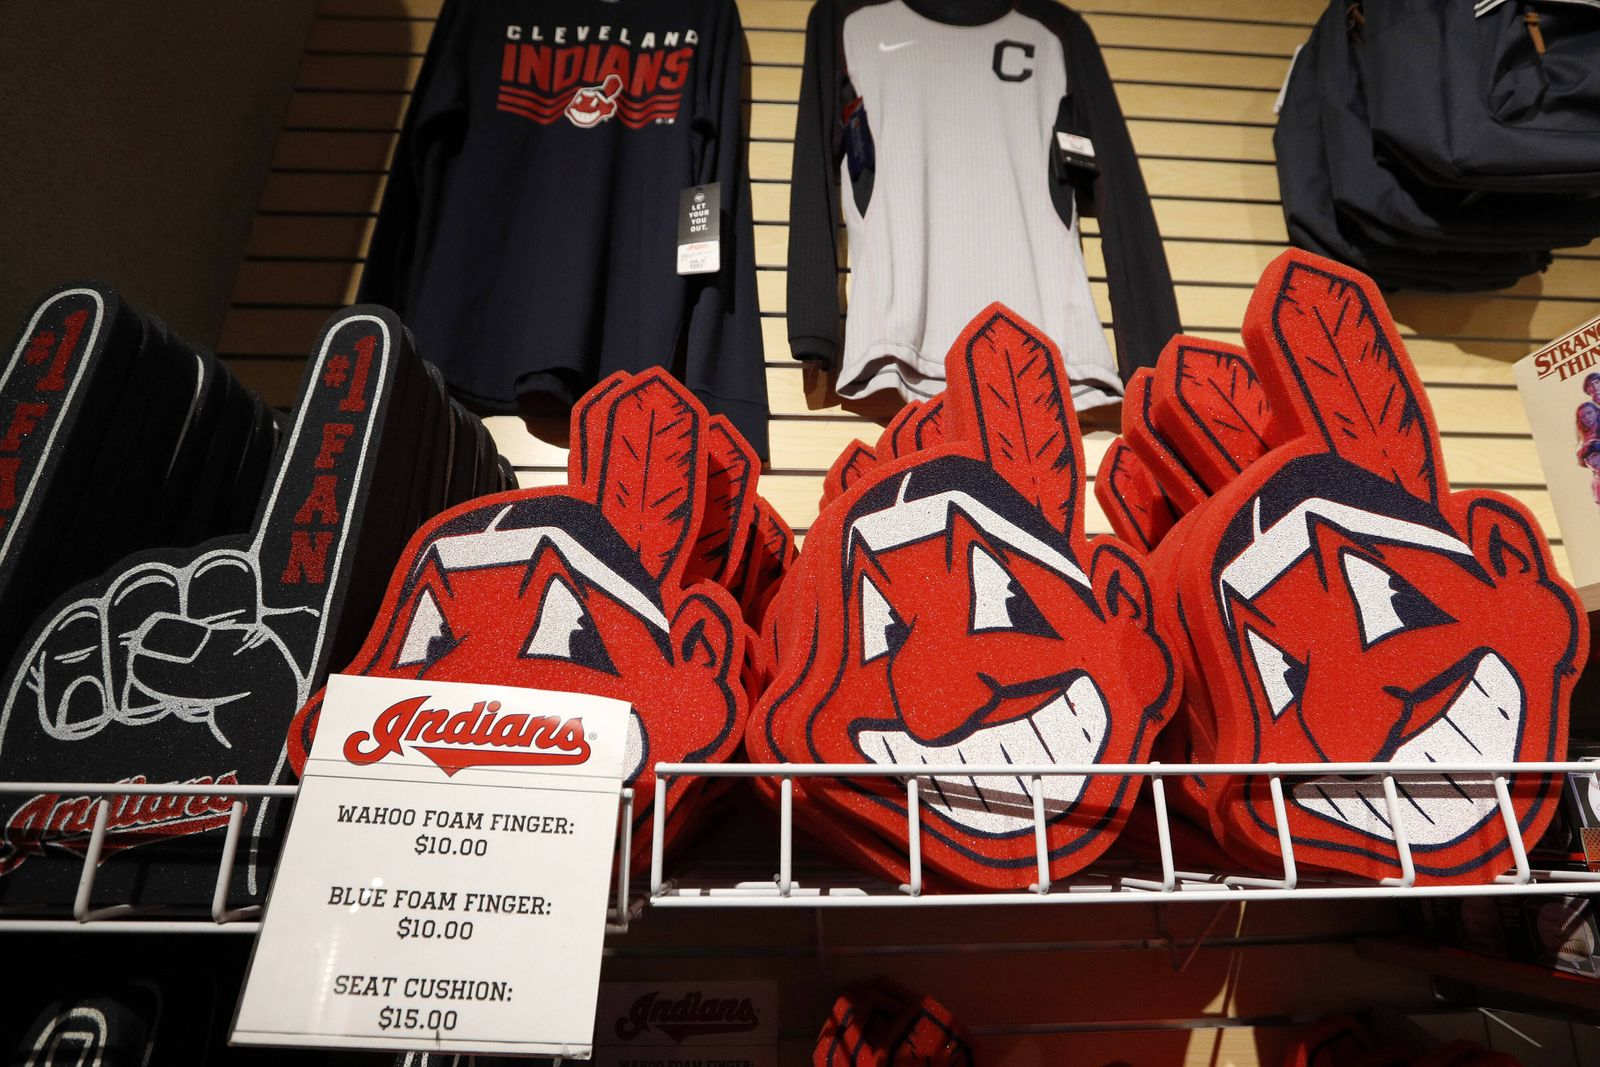 A Cleveland Indians Chief Wahoo foam finger sit for sale at the team shop inside Progressive Field in Cleveland, Ohio o